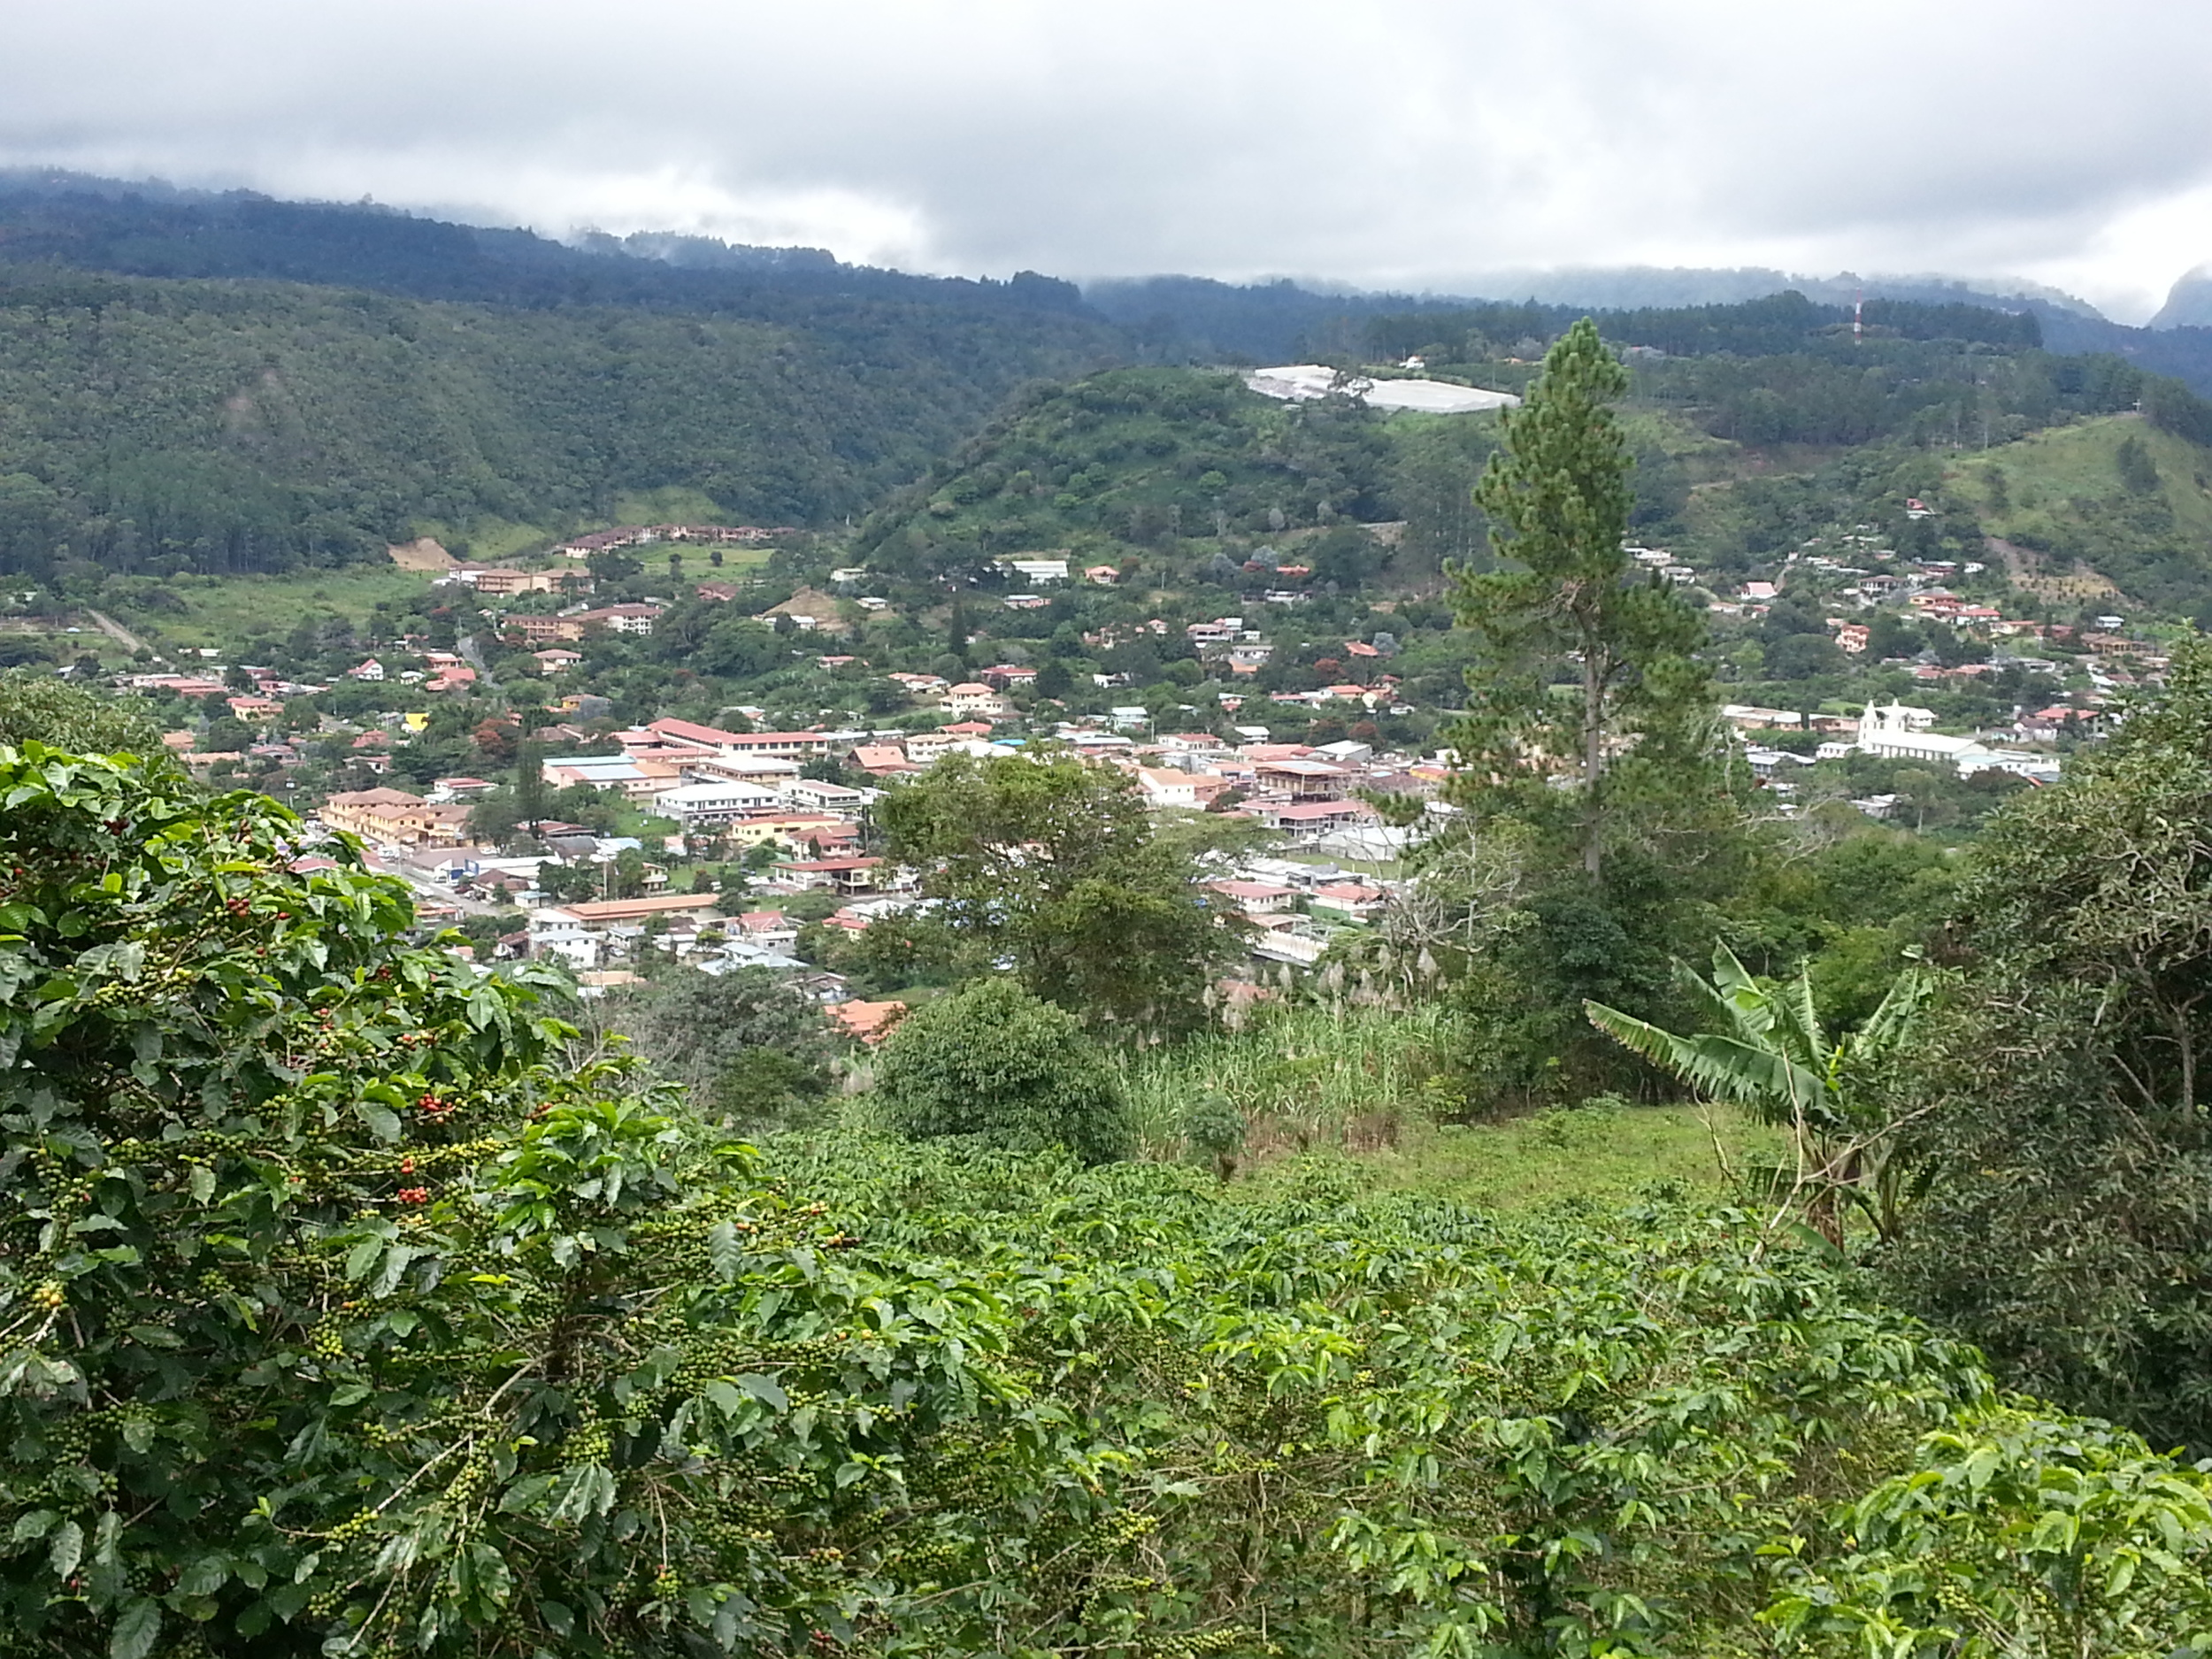 An almost bird's eye view onto Boquete (coffee plants in the foreground)